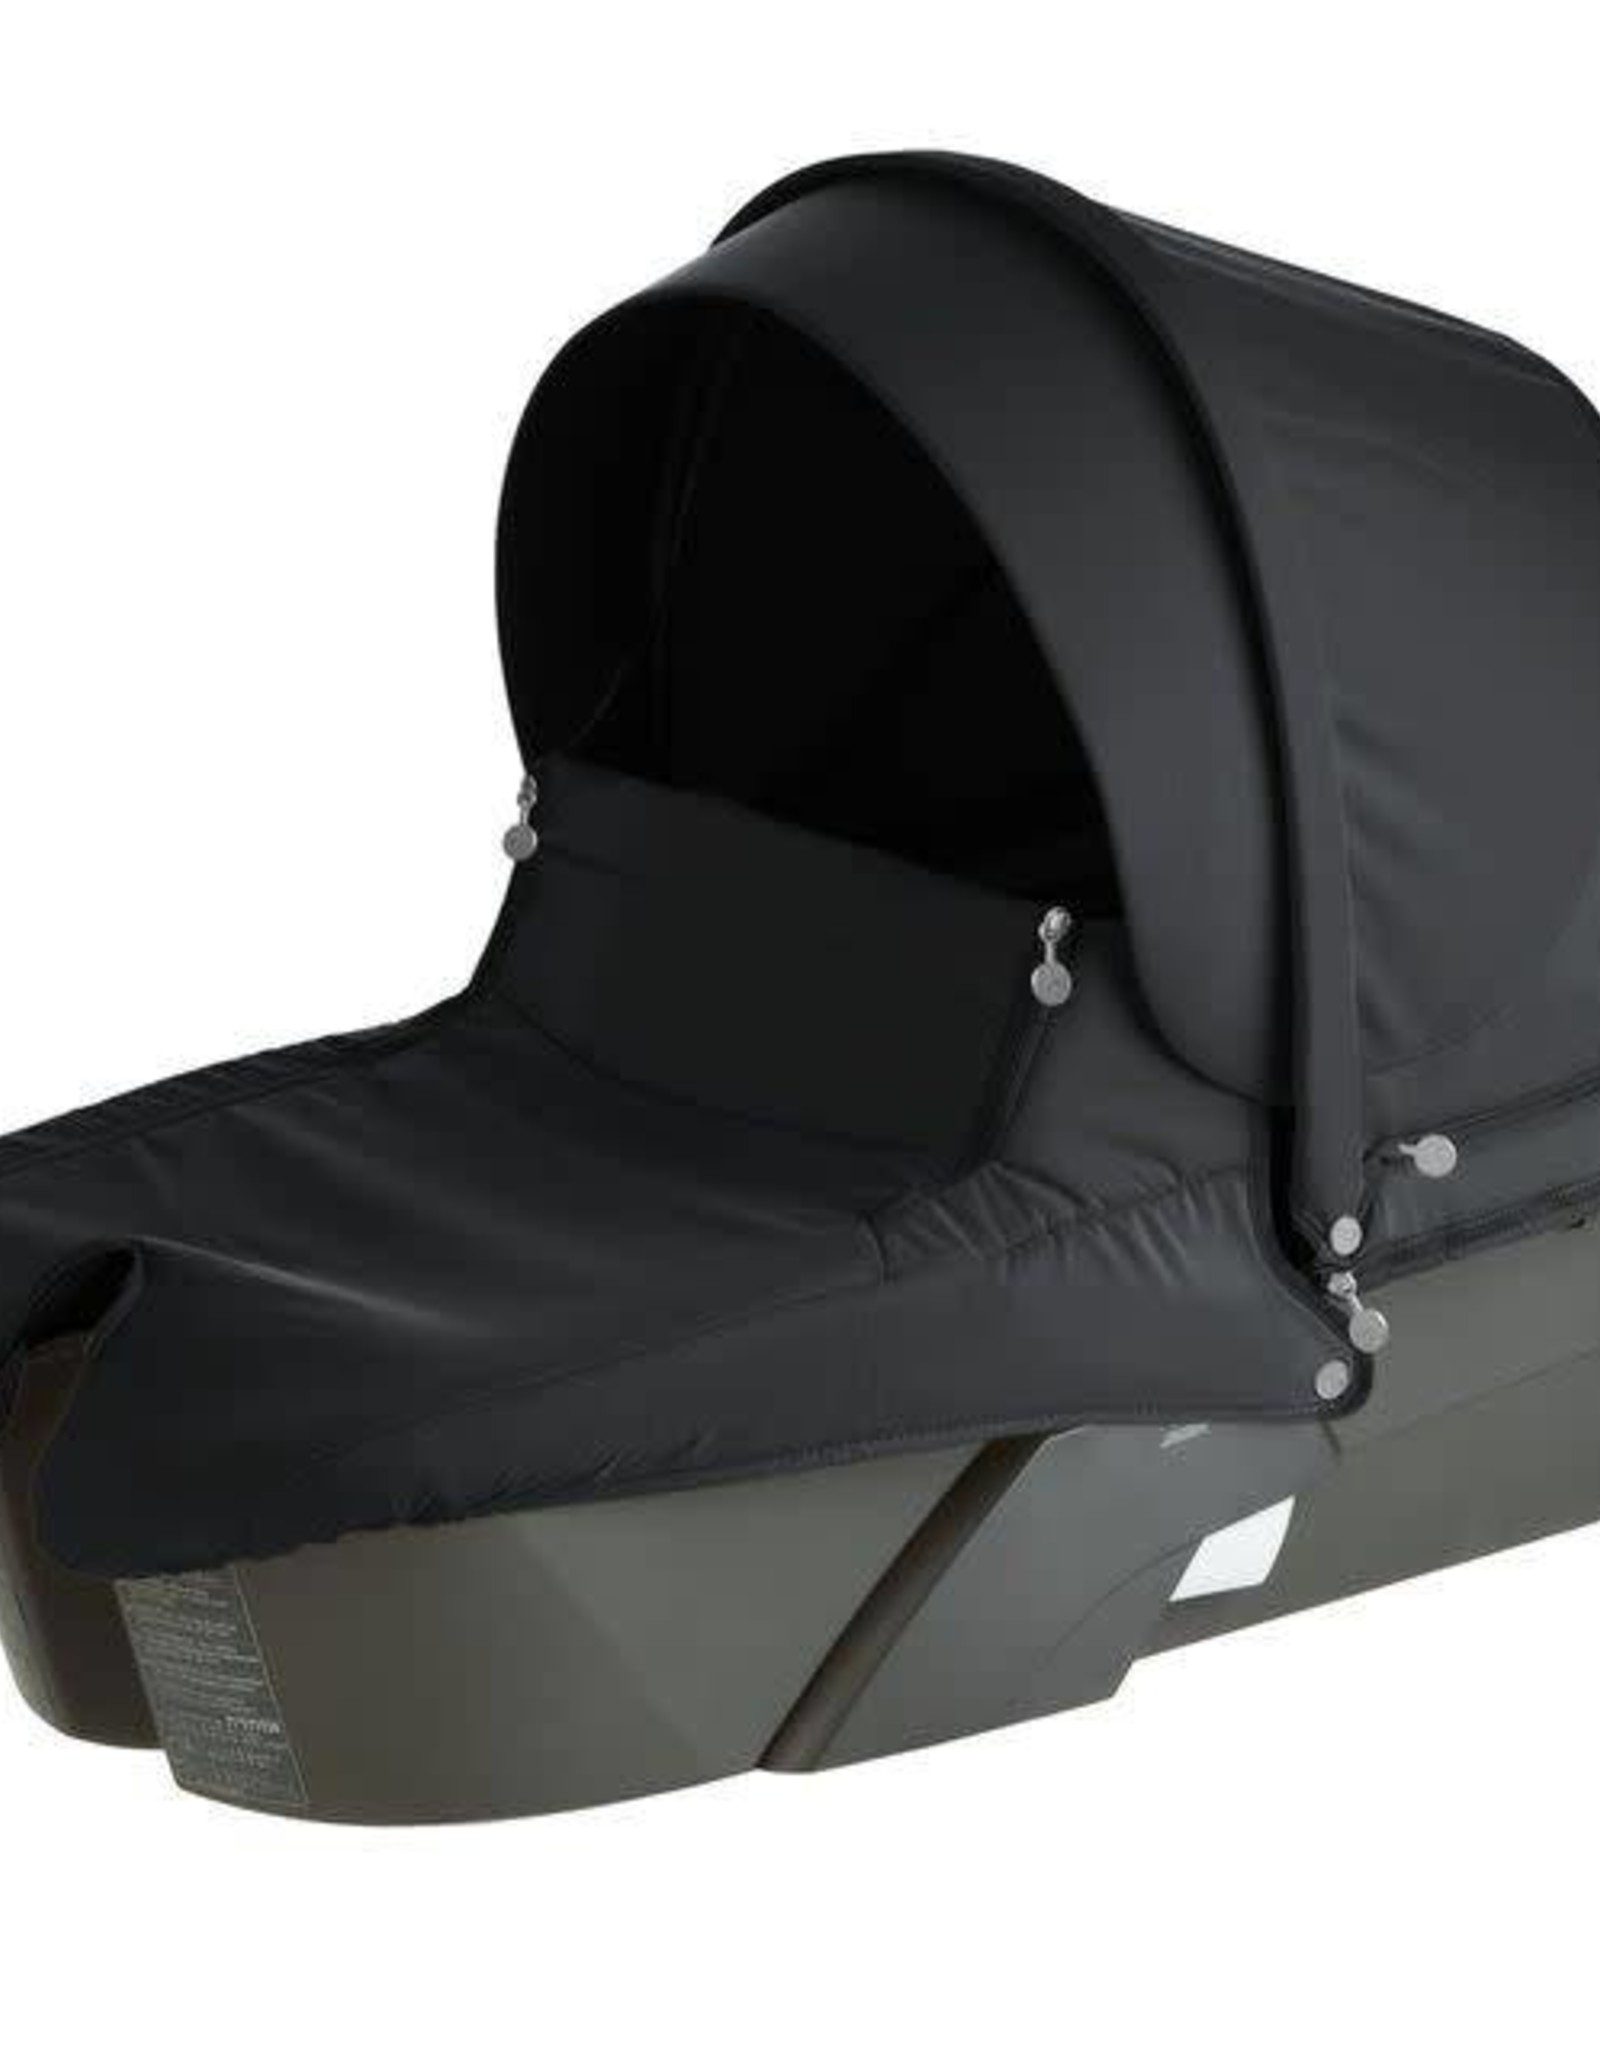 Stokke Xplory Carry Cot Complete